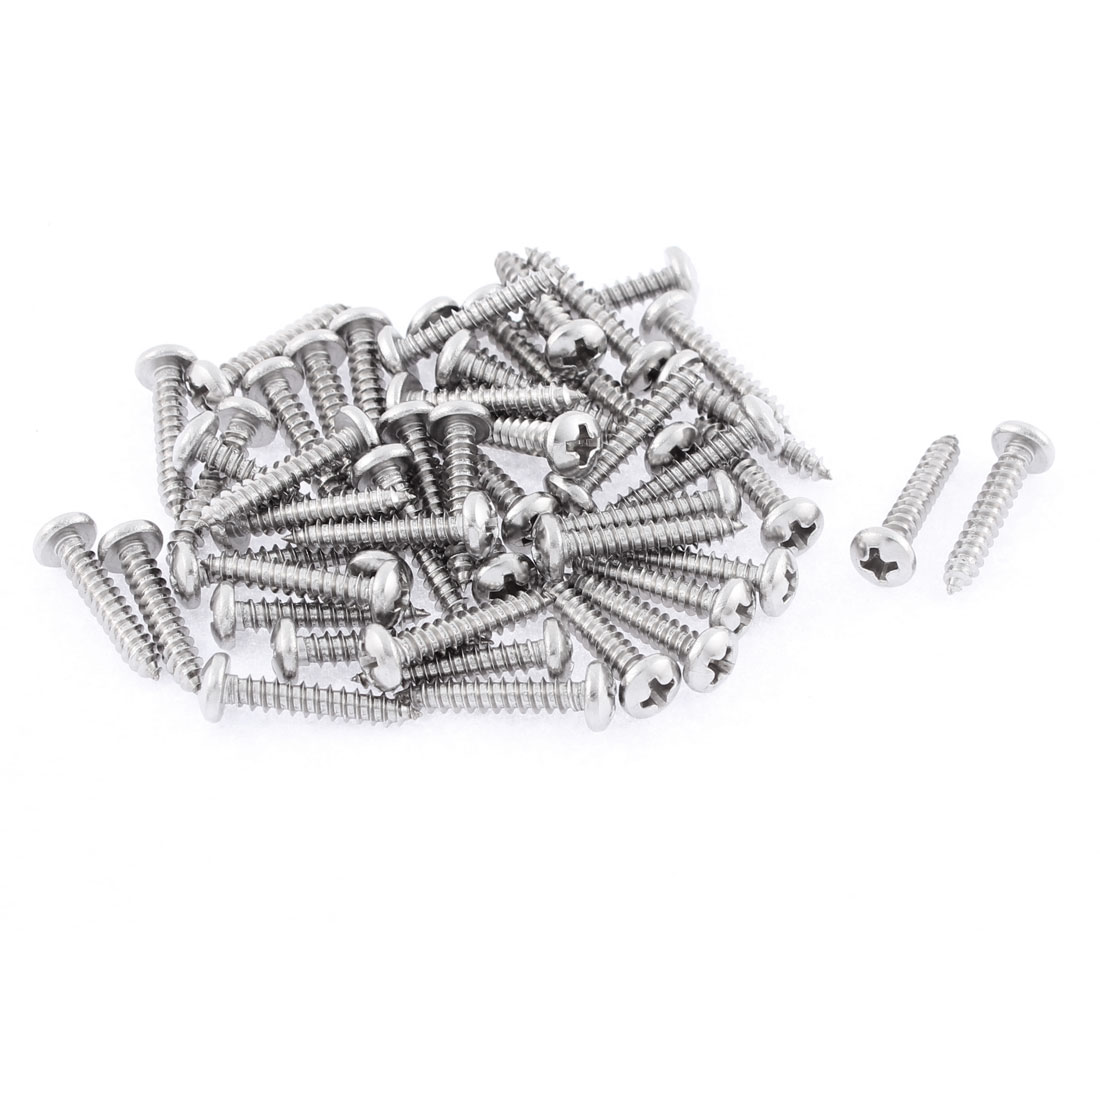 50 Pcs 3.5mmx19mm Stainless Steel Phillips Round Head Sheet Self Tapping Screws